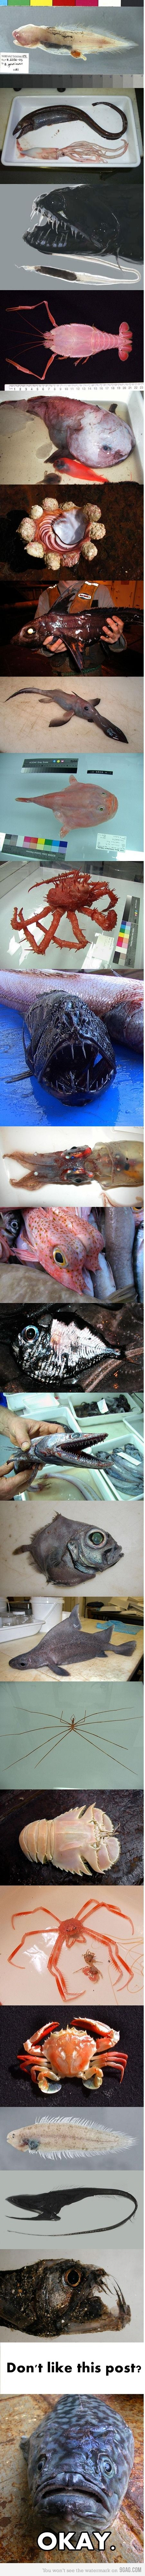 Some really weird and scary sea creatures - eeekkk!